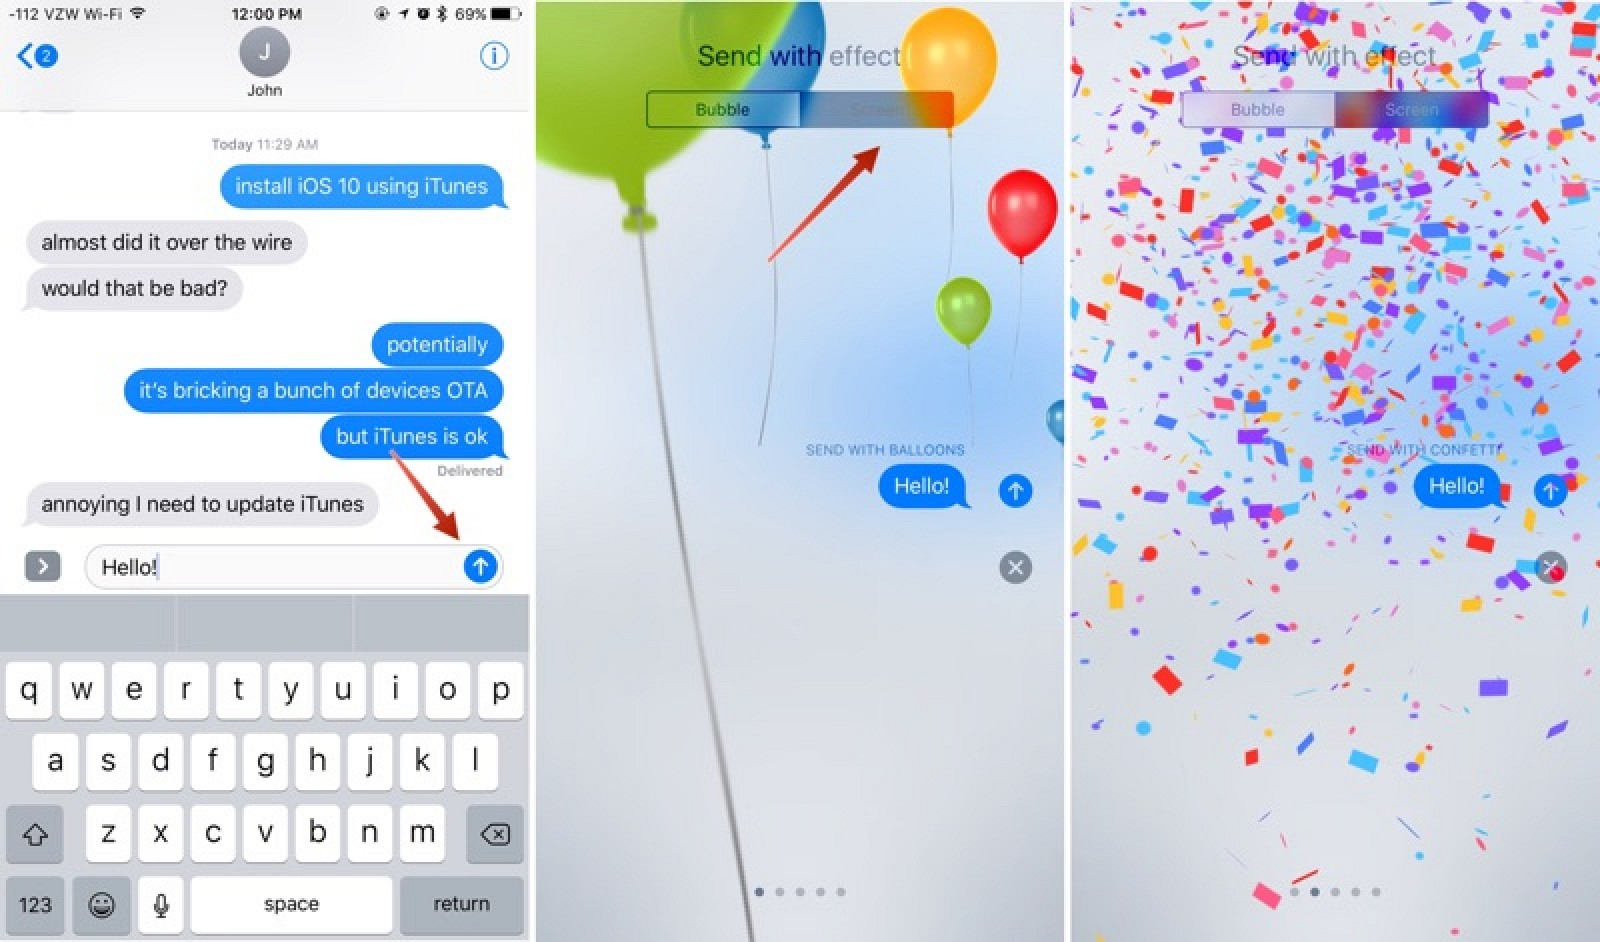 How to Use Messages' Tapback, Screen Effects and Bubble